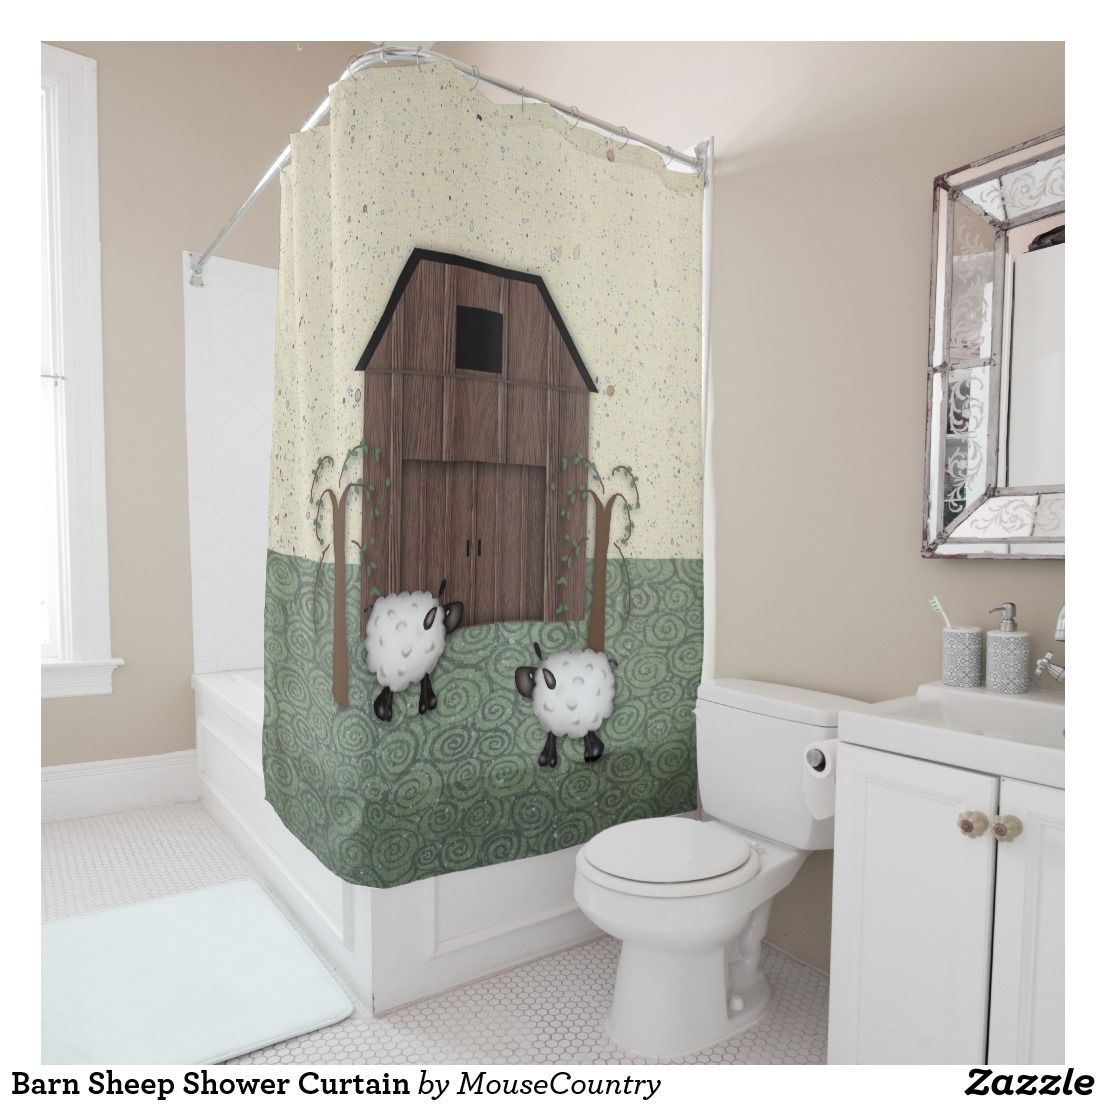 Barn Sheep Shower Curtain Lovely Country Countrydecor Bathroomdecor Showercurtain Countrybathroomdecor Showercurtainrustic